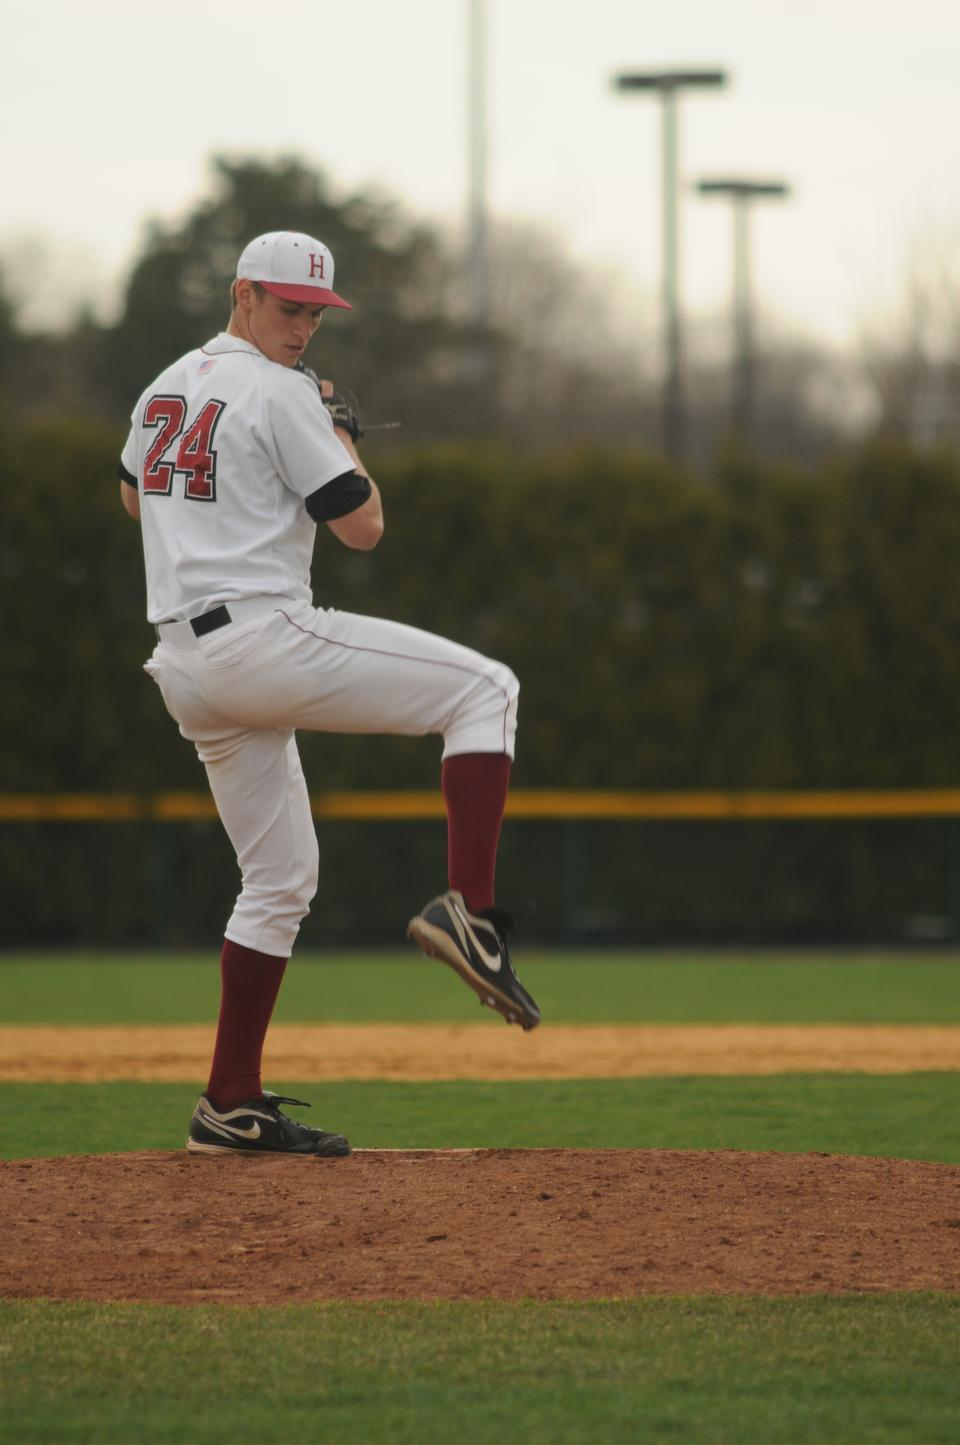 Former Harvard pitcher Brent Suter '12 was selected by the Milwaukee Brewers in the 2012 draft.